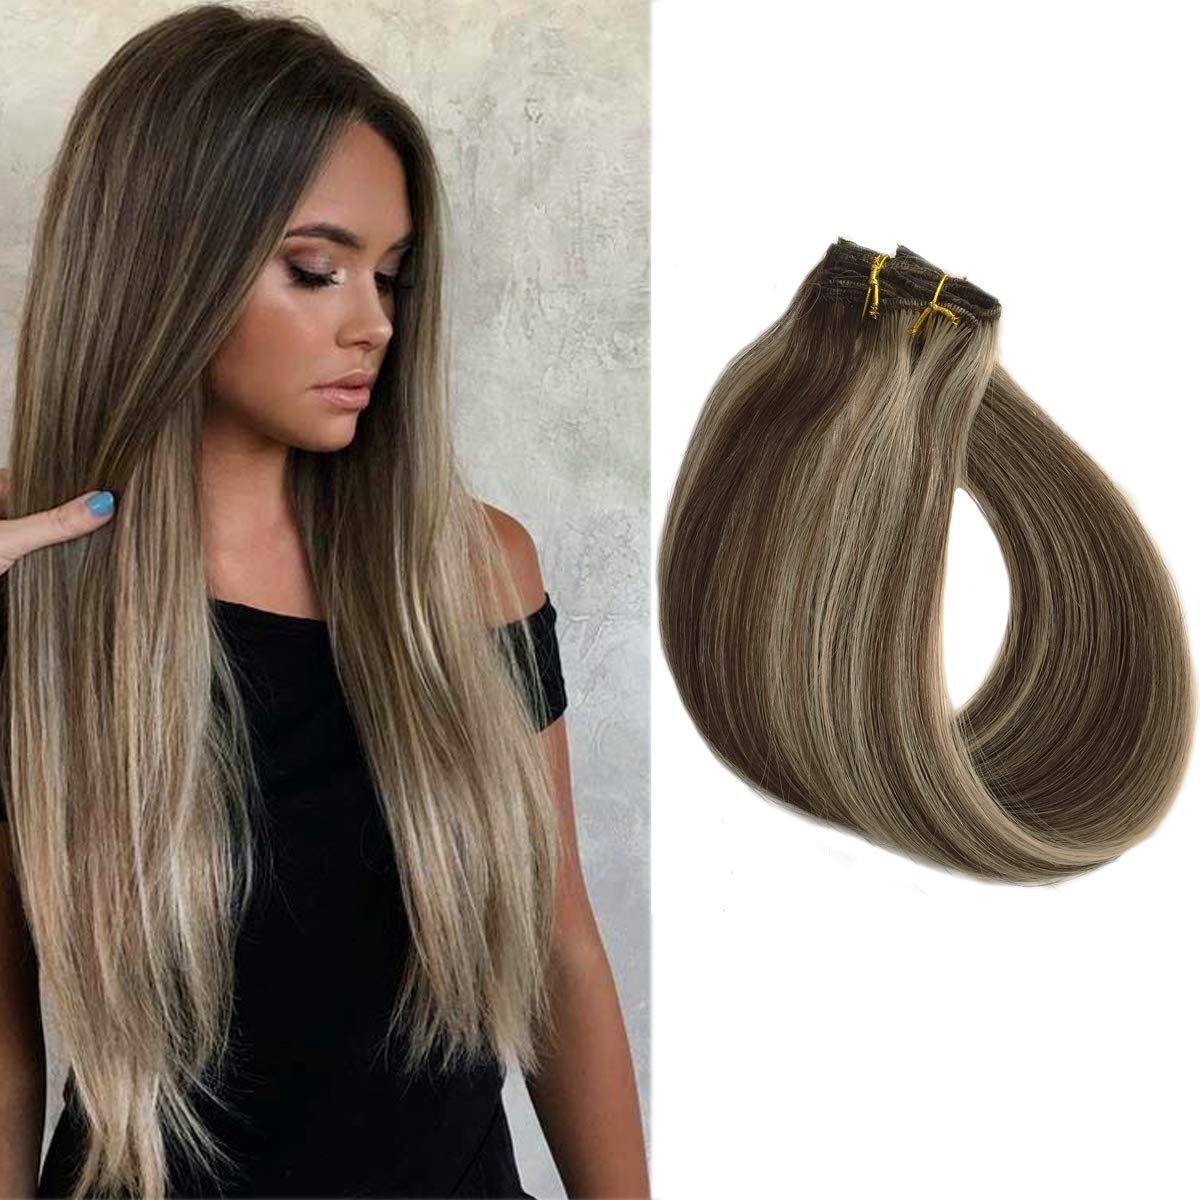 Human Hair Extensions Clip In Brown To Blonde Highlights 70grams 15 Short Straight Clip In Balayage Extensions For Women 7 Pieces 2 613